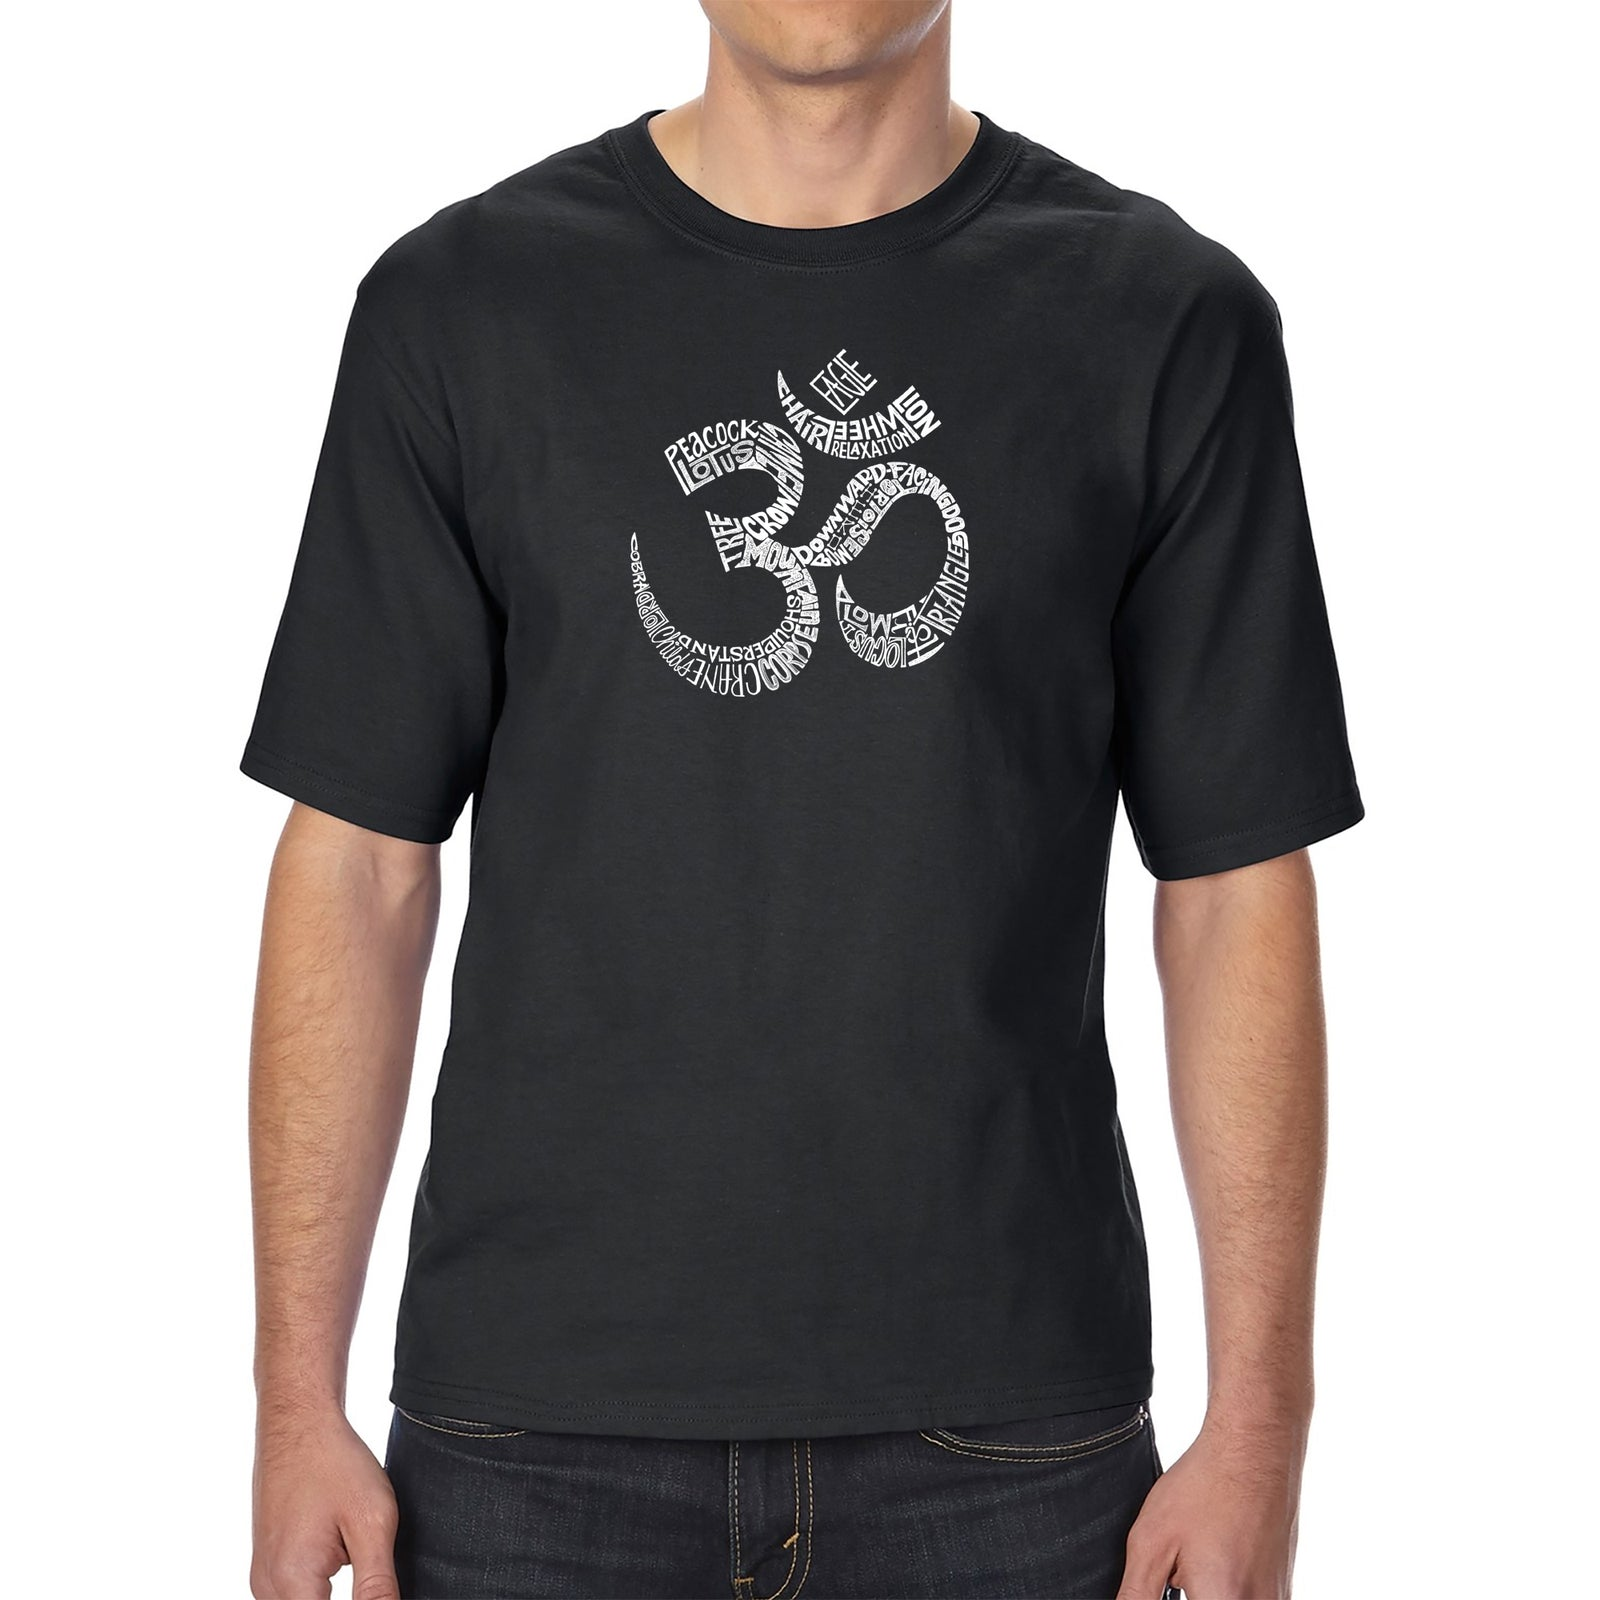 Men's Tall and Long Word Art T-shirt - Poses OM